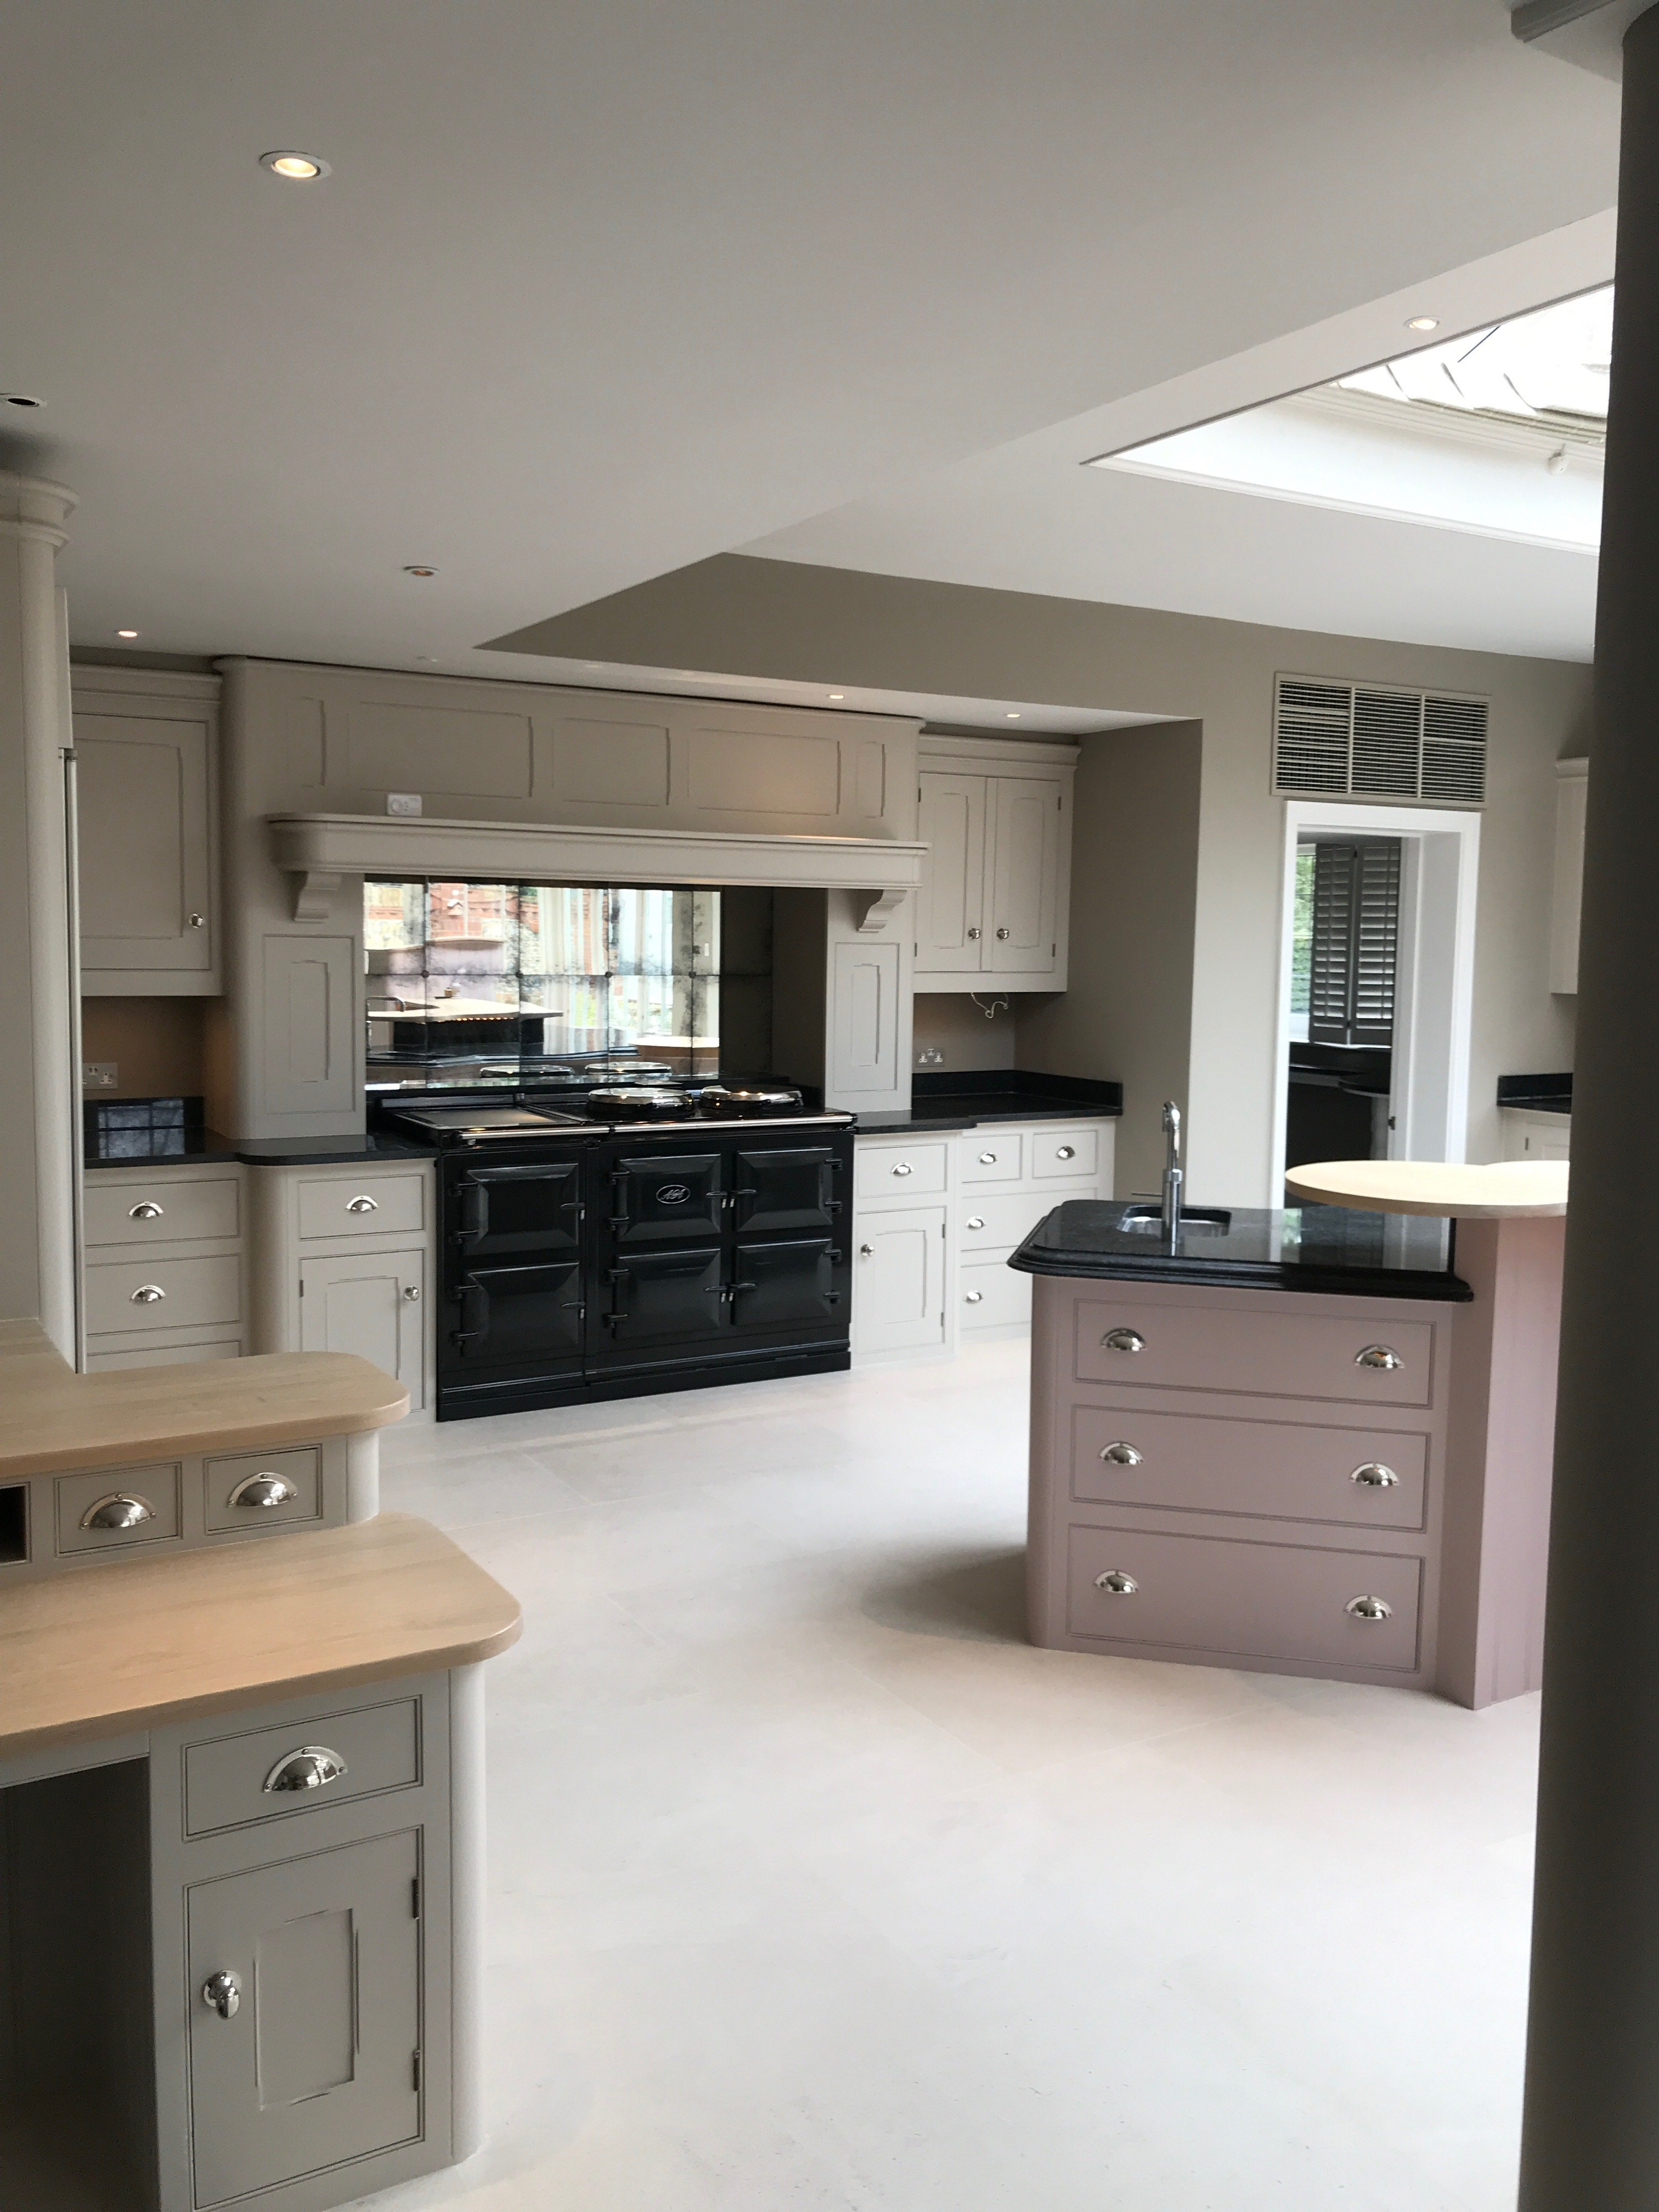 Residential Property in Chalfont St Giles – Case Study